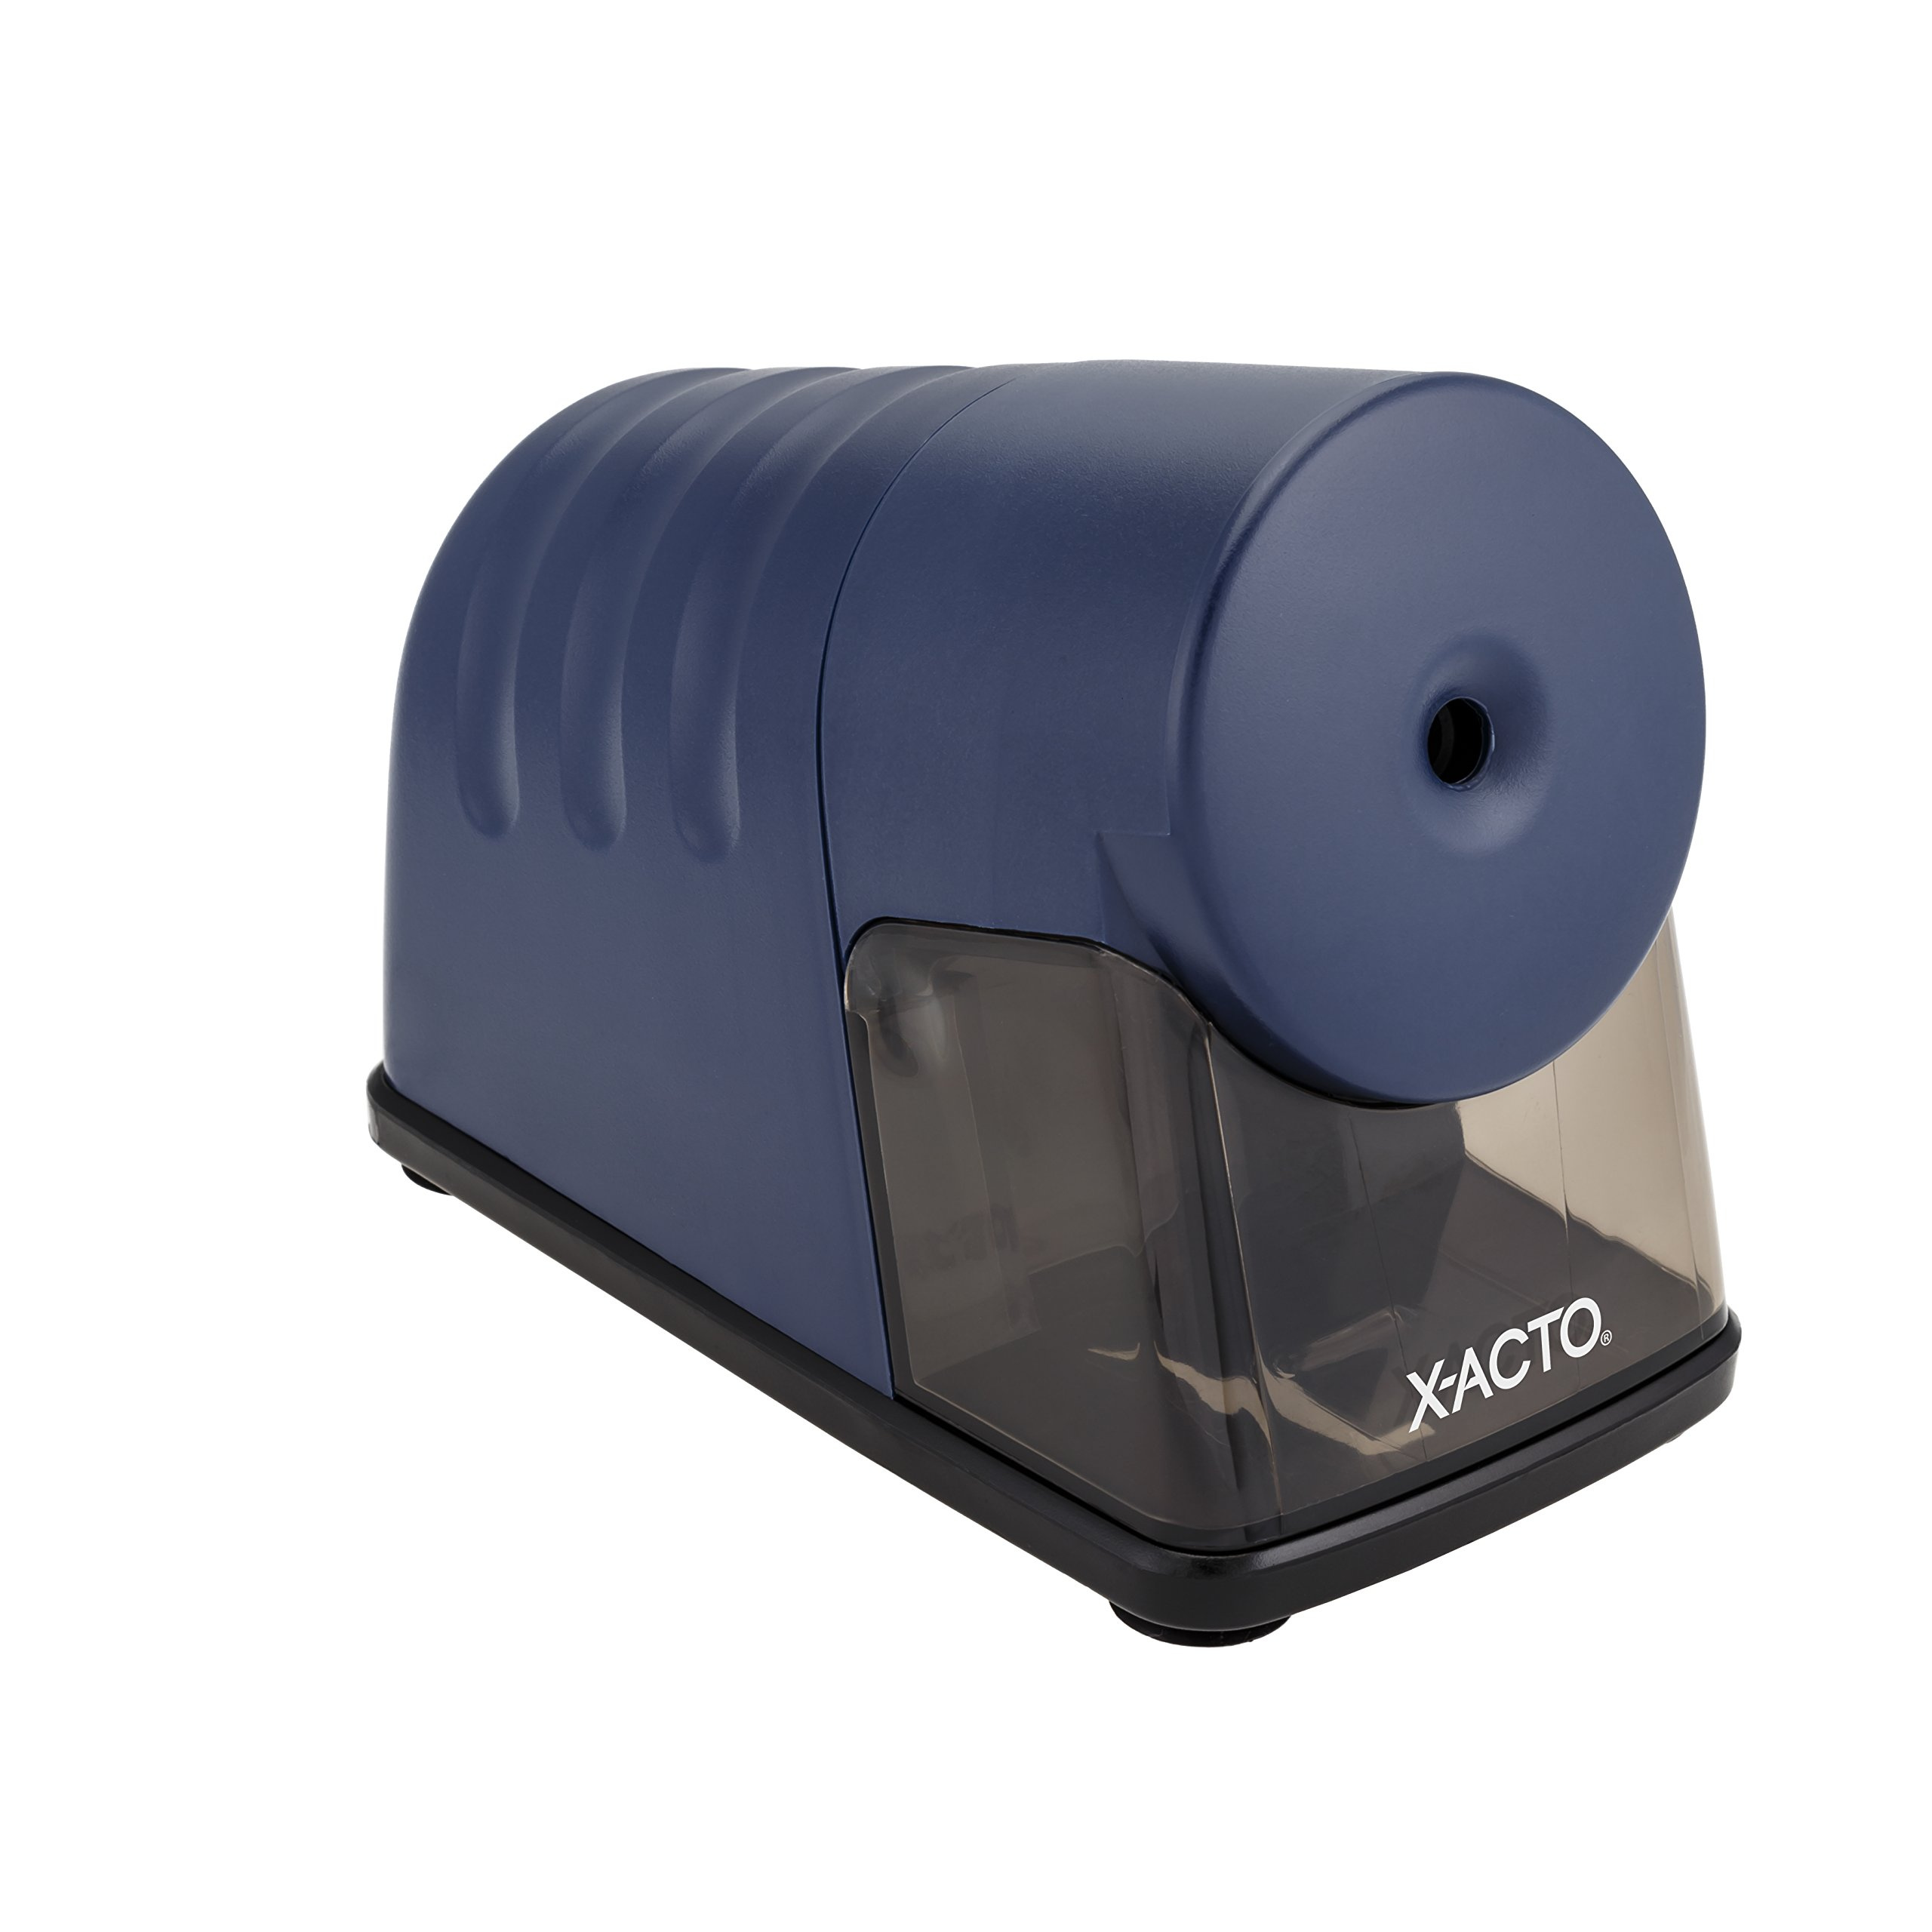 X-ACTO Powerhouse Electric Pencil Sharpener, Navy Blue by X-Acto (Image #1)